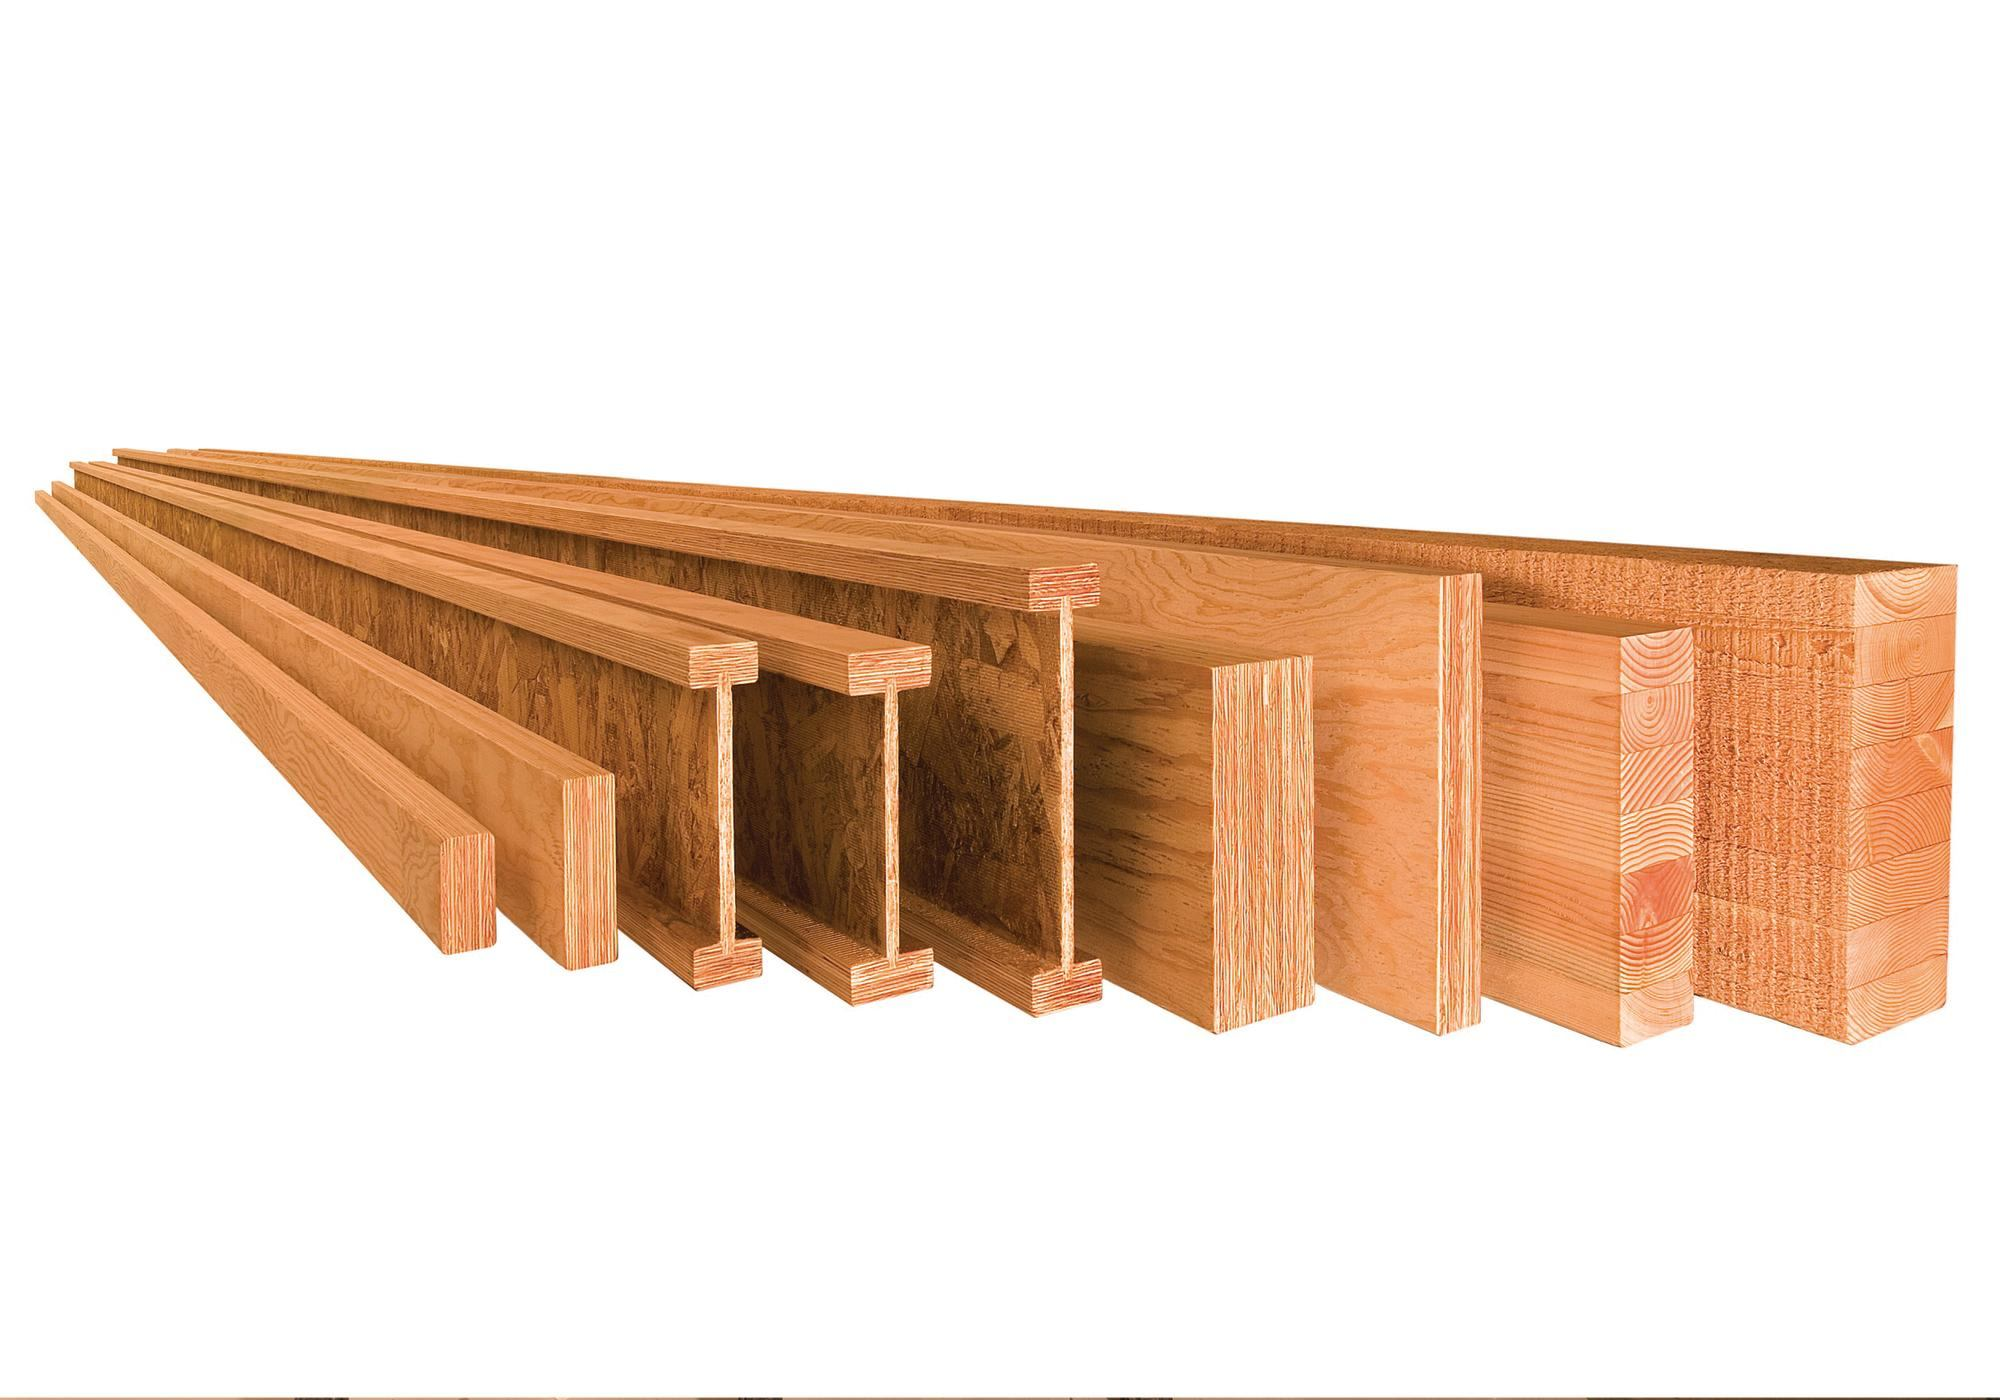 Fsc Certified Engineered Wood From Boise Cascade